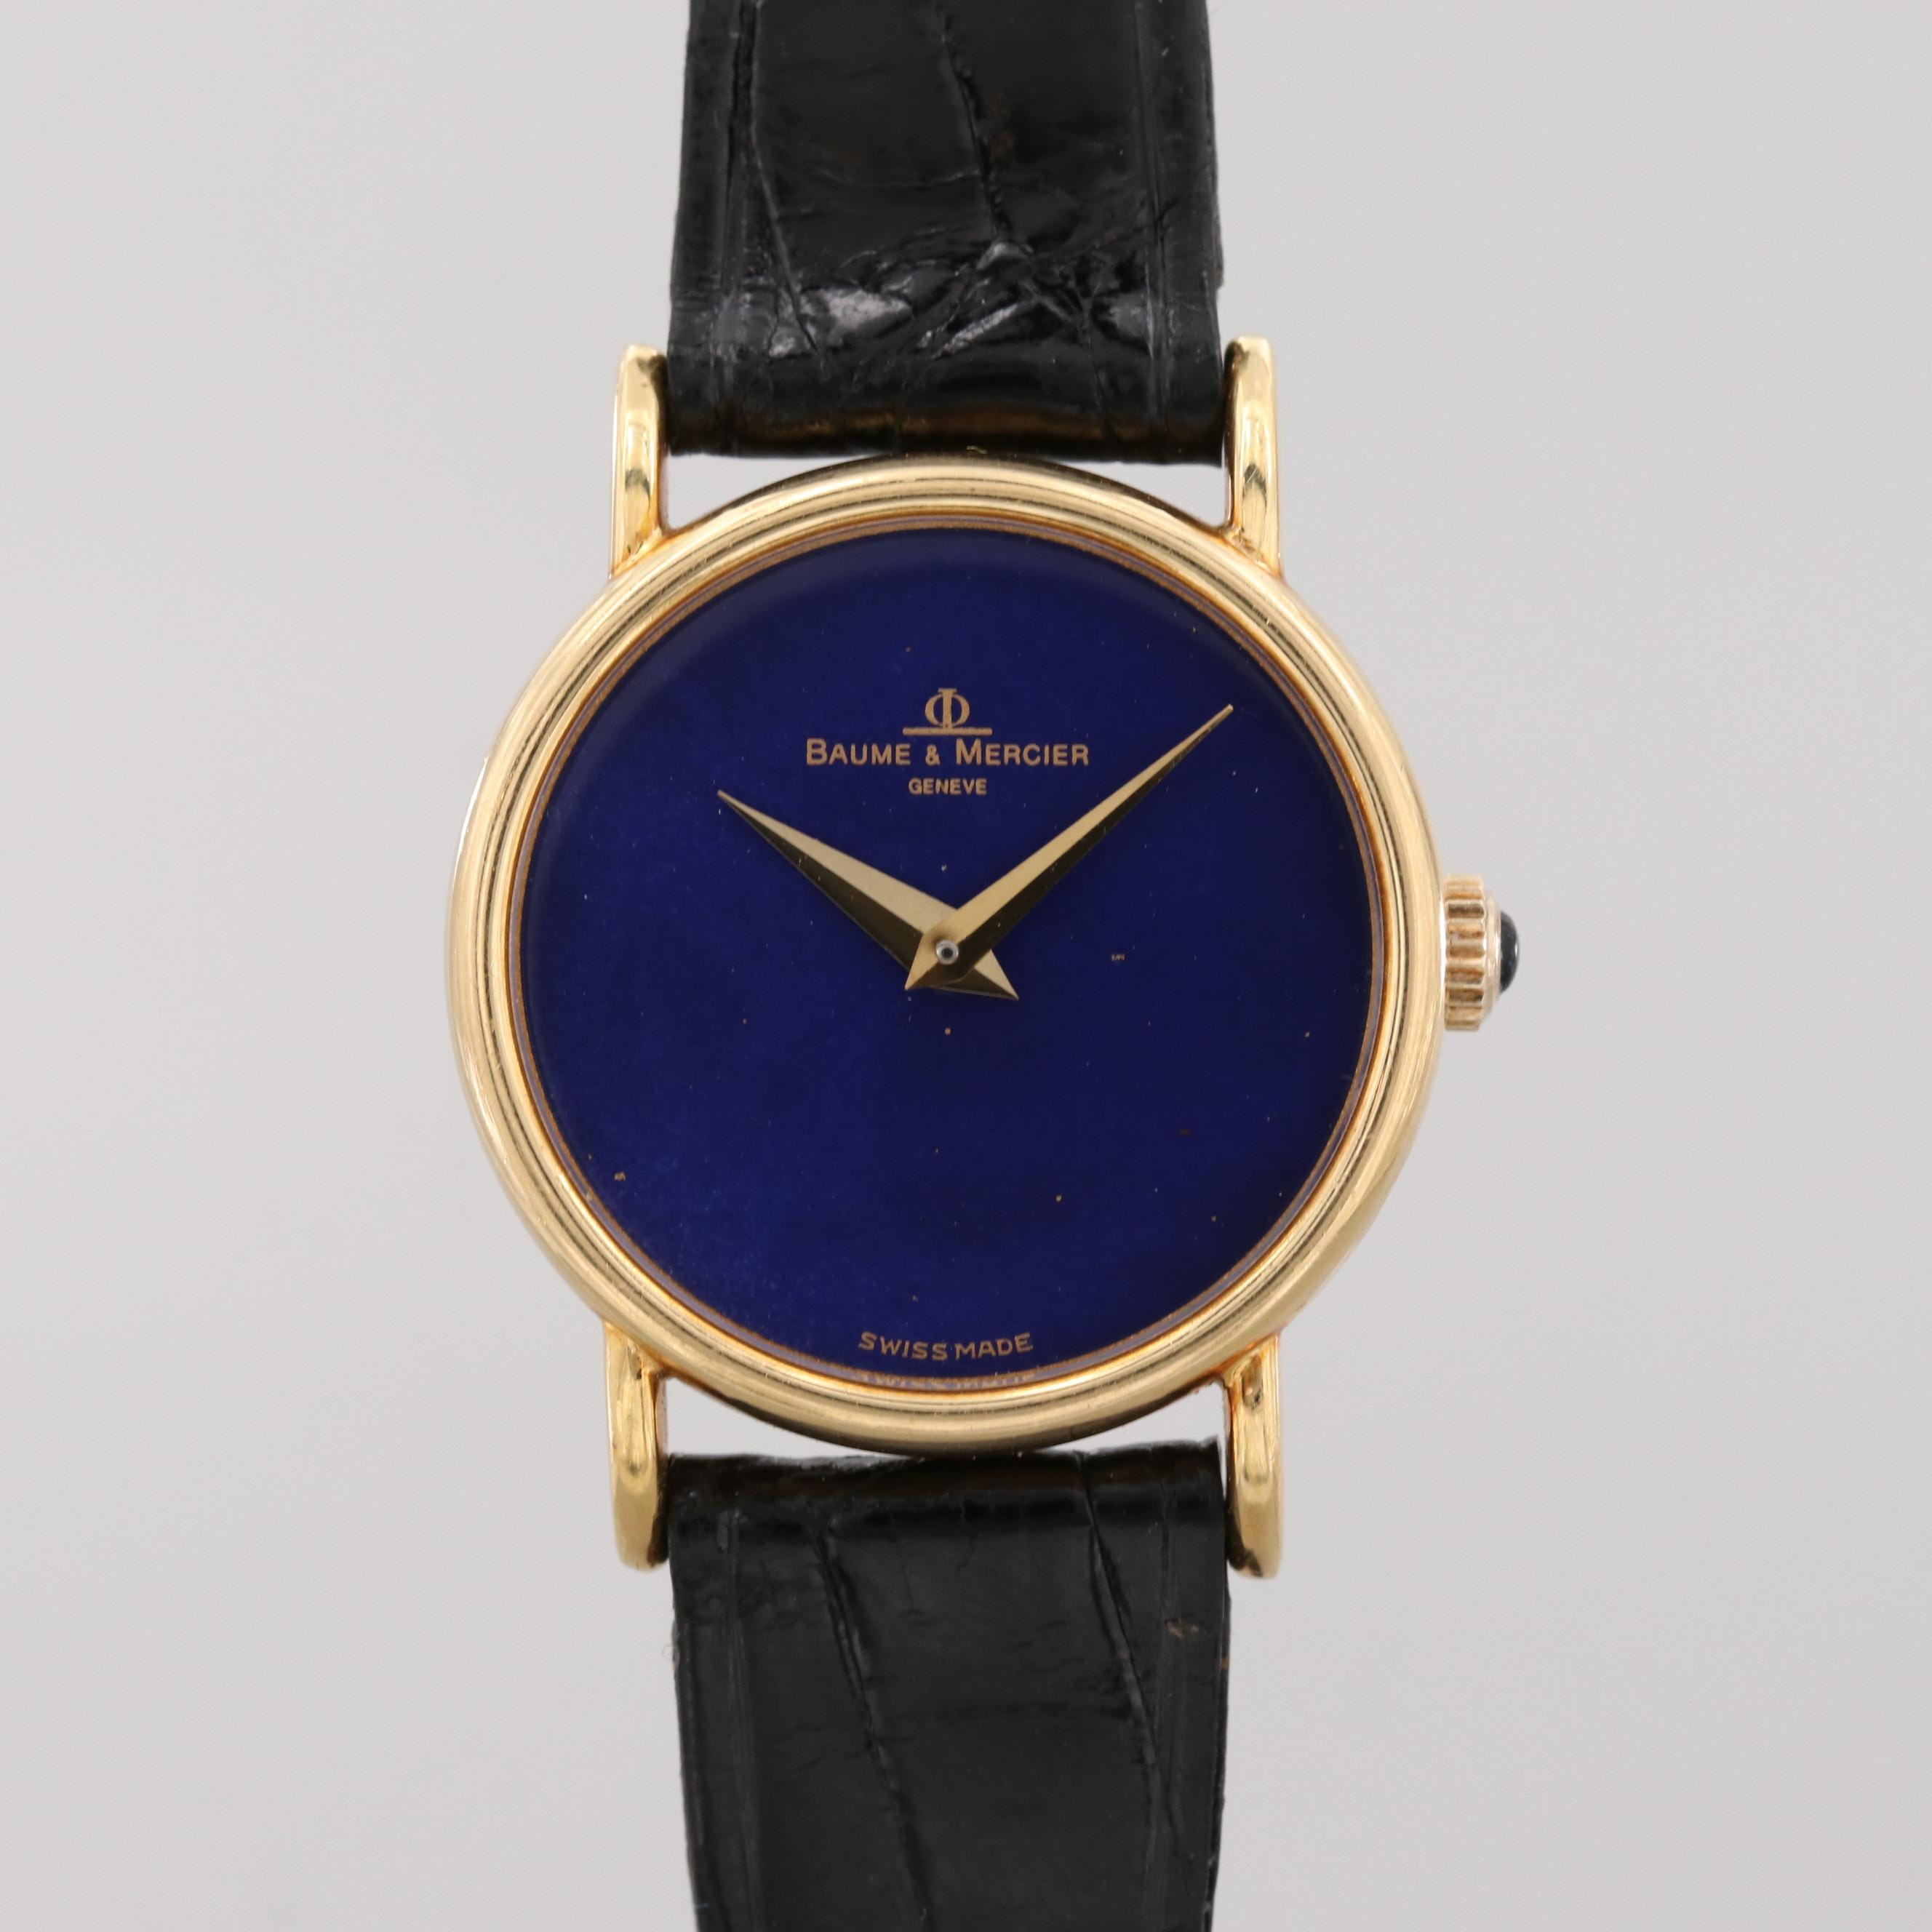 Baume & Mercier 18K Yellow Gold Wristwatch With Blue Lapis Lazuli Dial